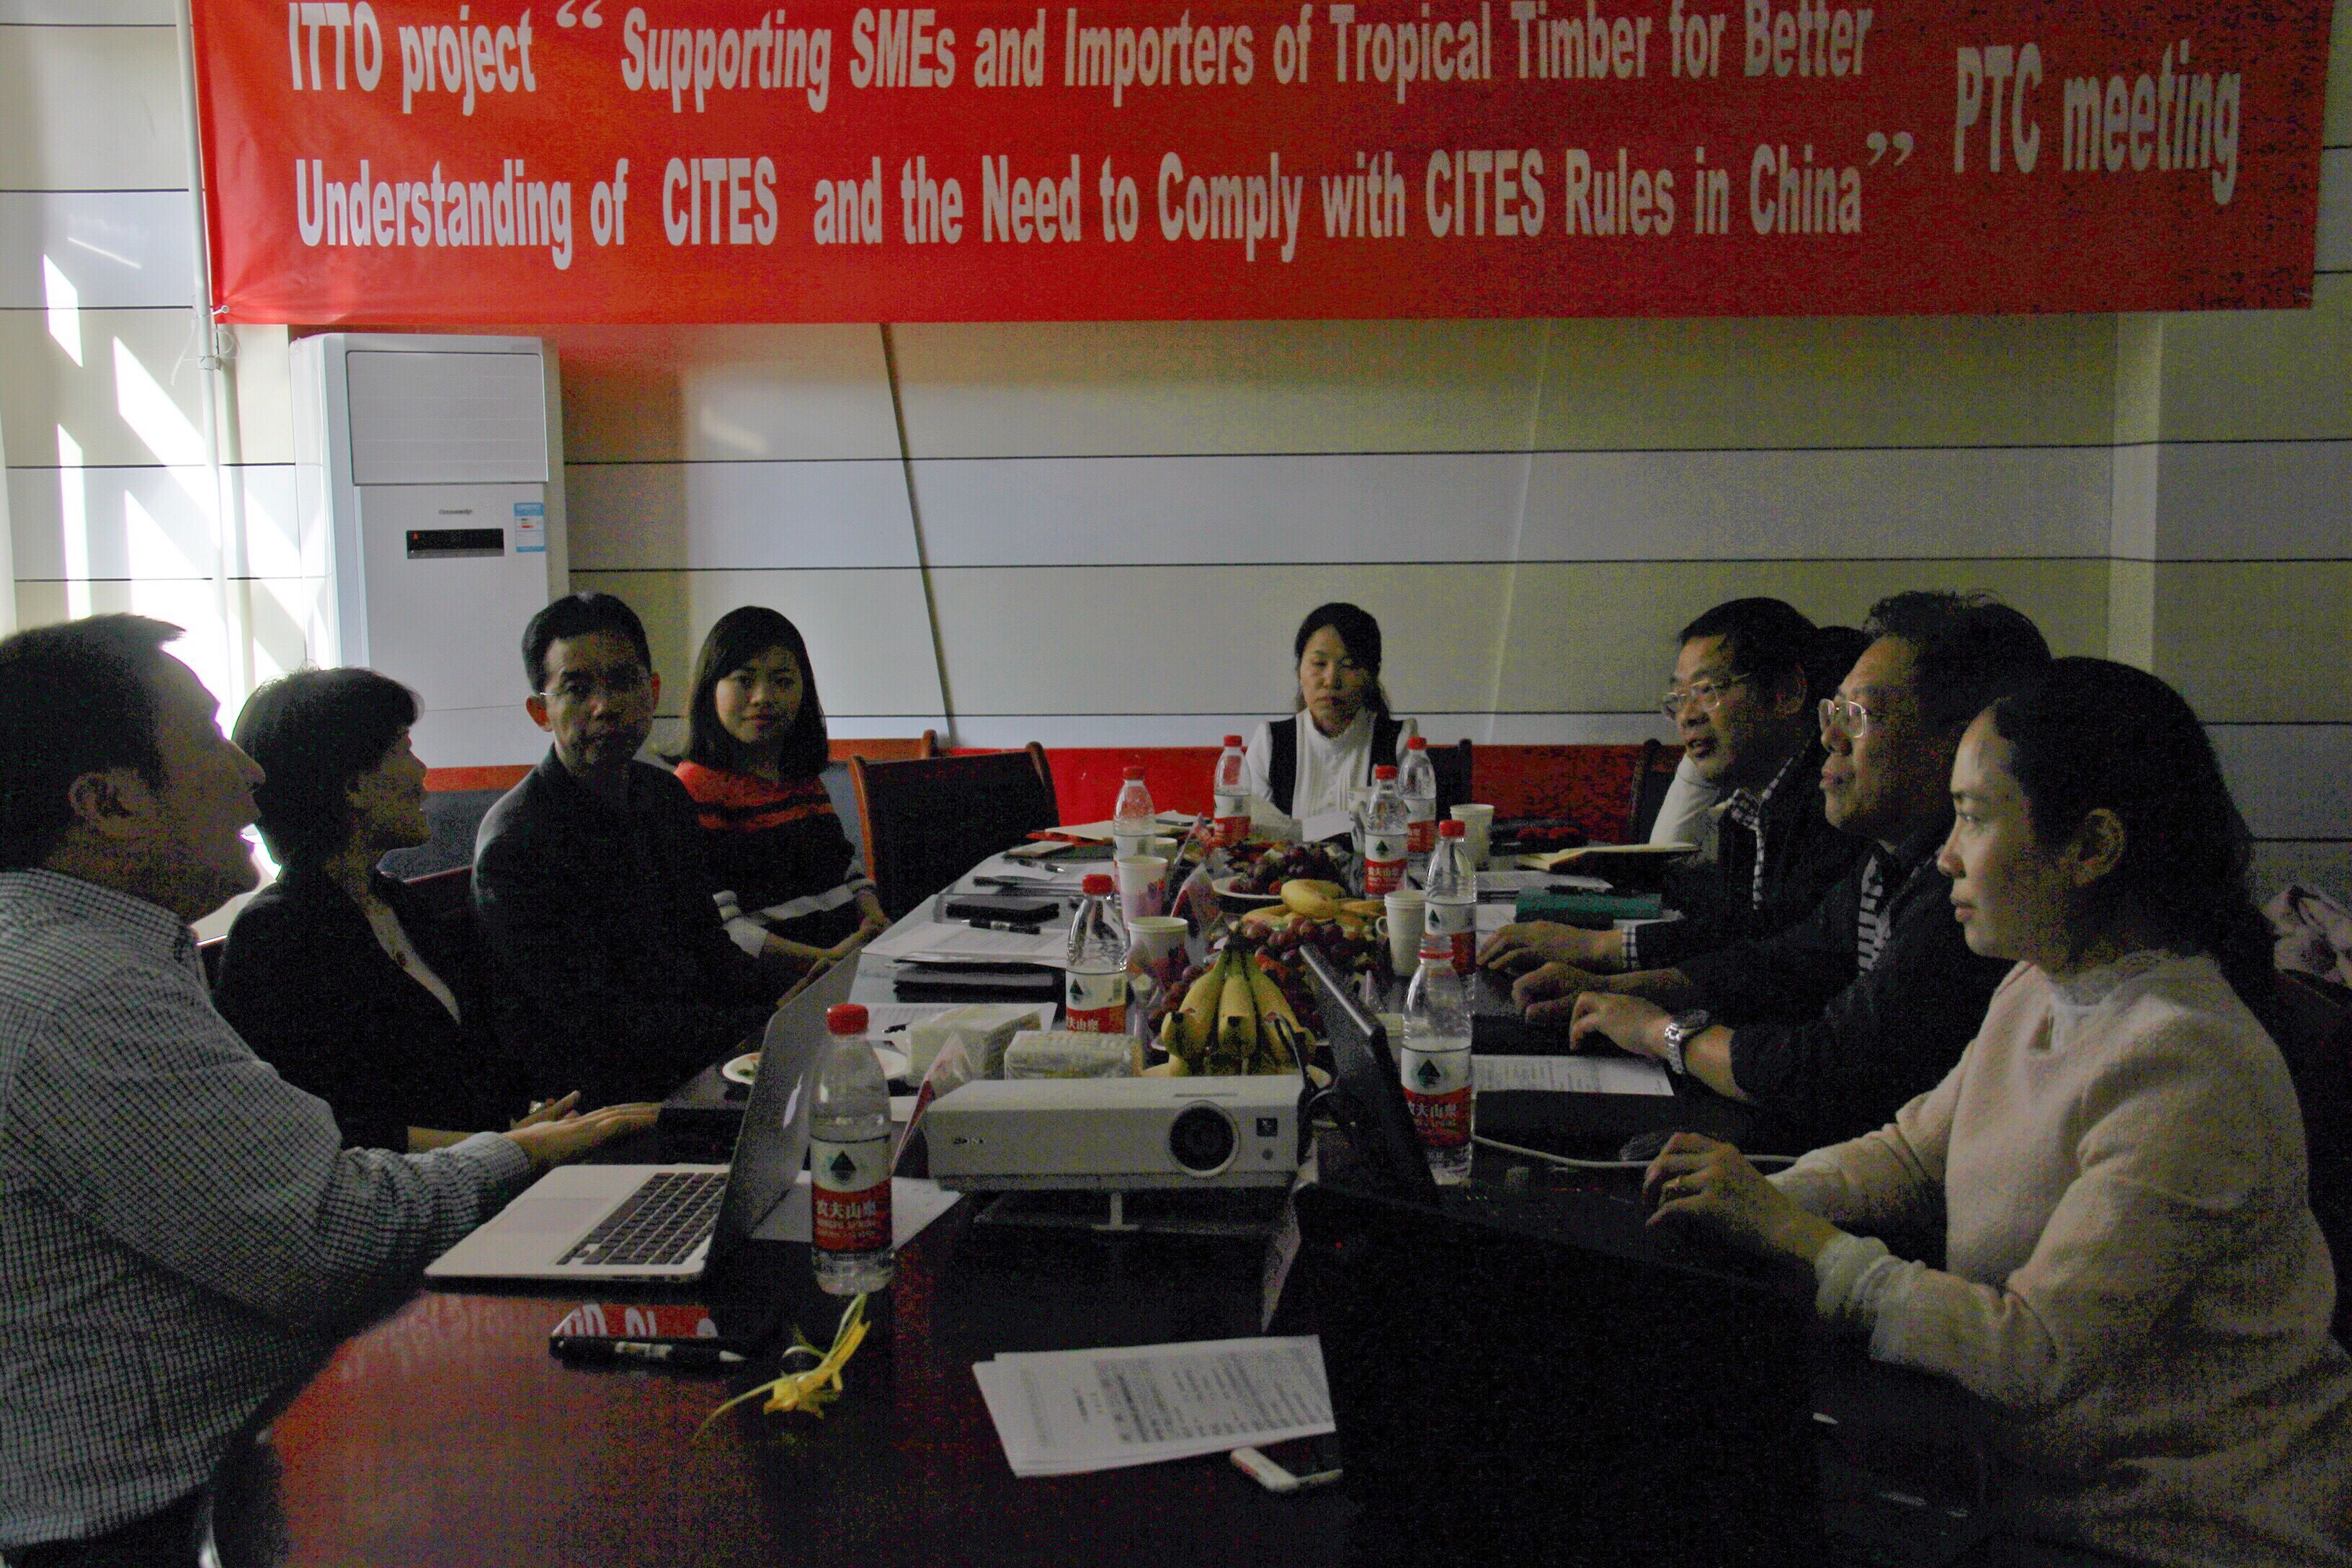 The second PTC meeting of ITTO project